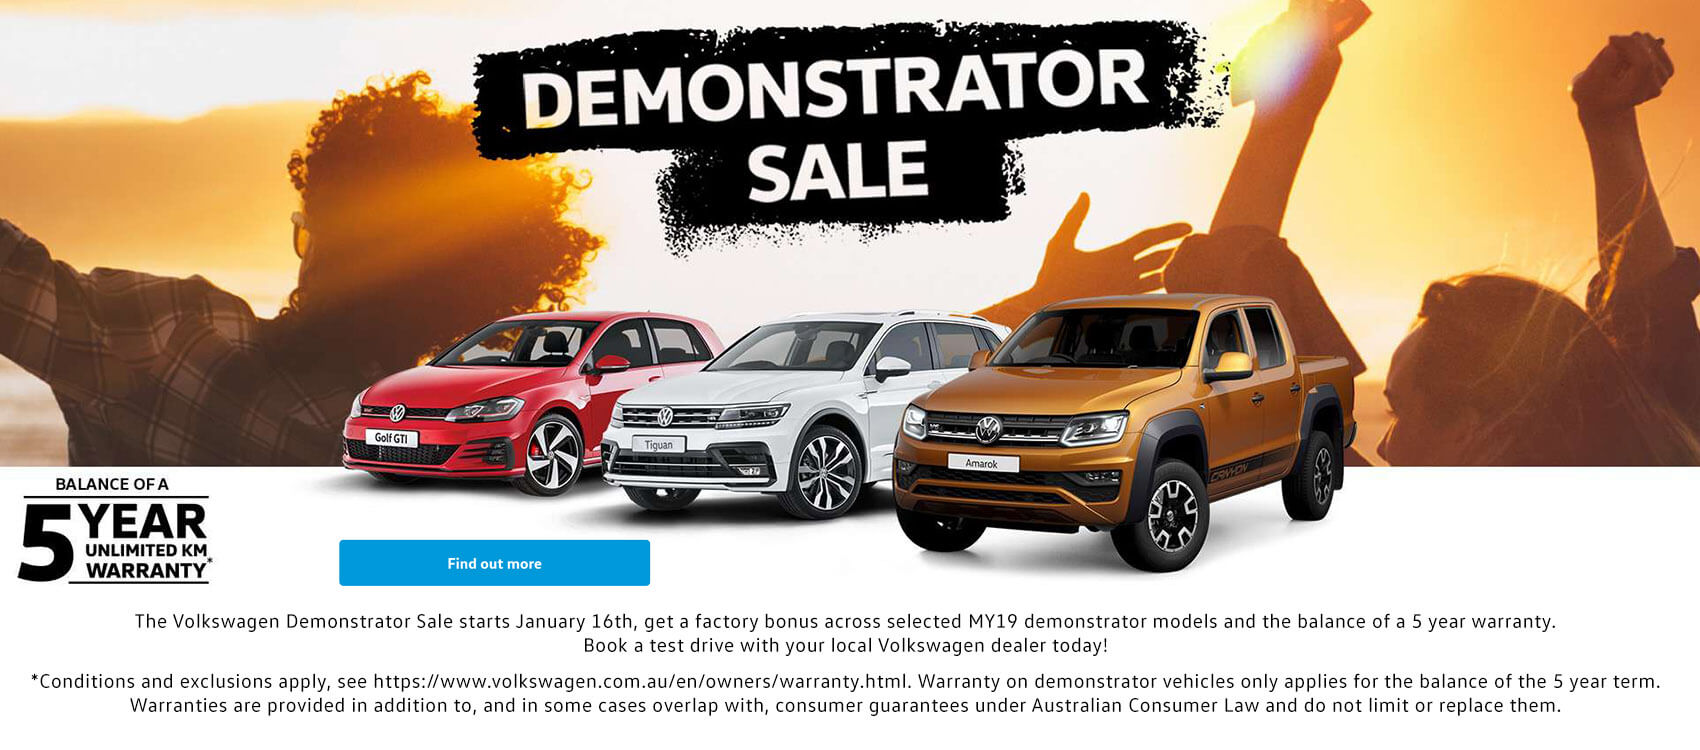 The Volkswagen Demonstrator Sale starts January 16th, get a factory bonus across selected MY19 demonstrator models and the balance of a 5 year warranty. Book a test drive with Westpoint Volkswagen